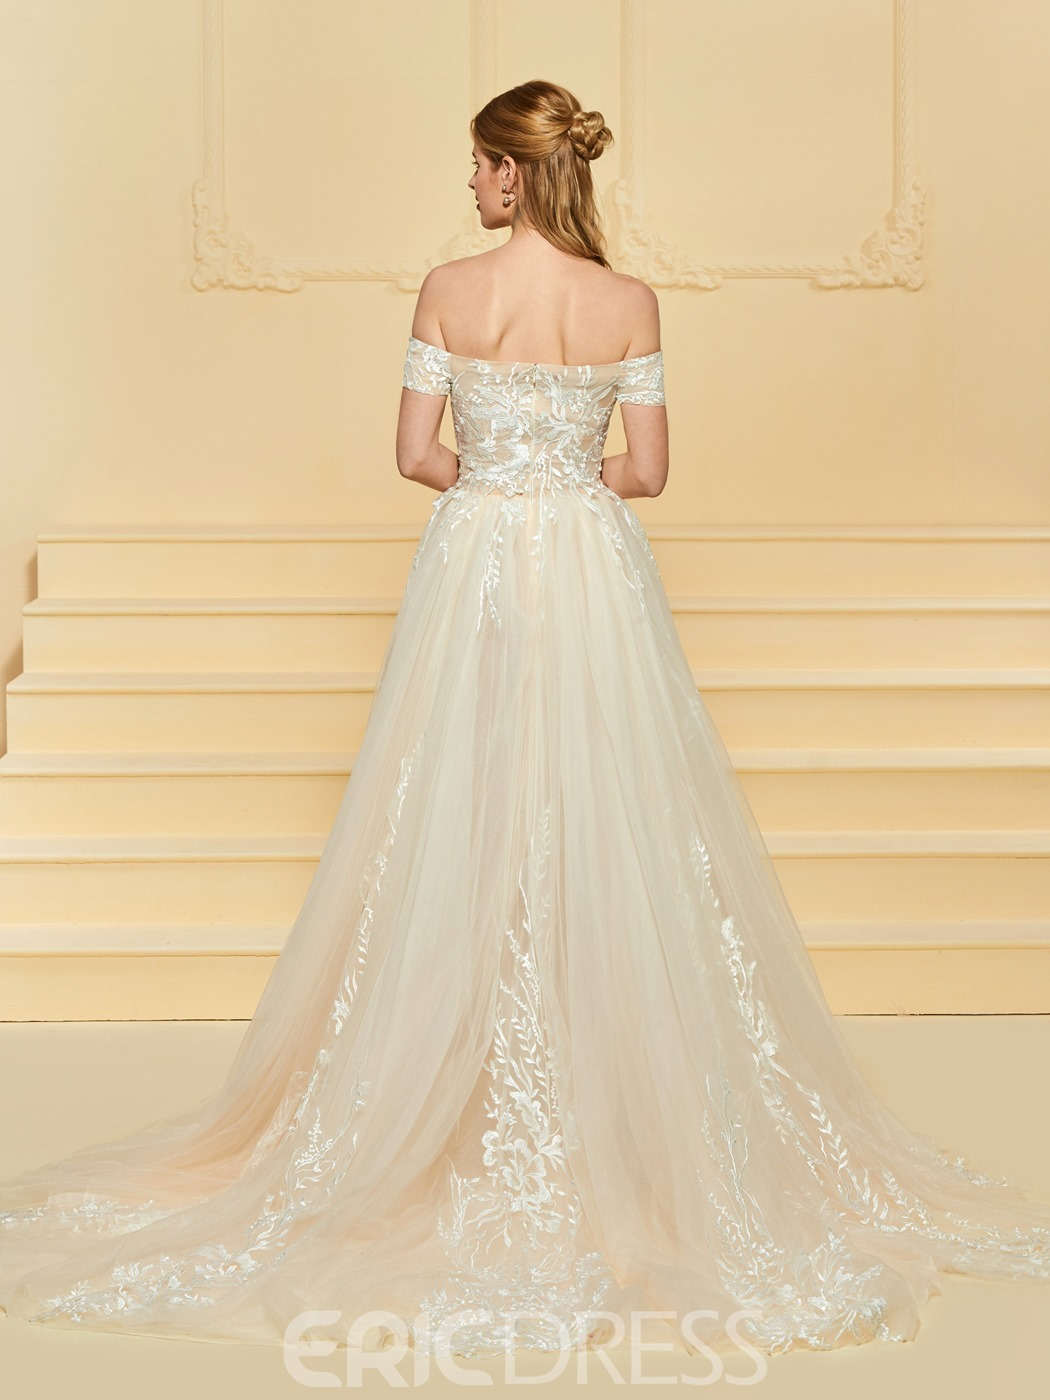 Ericdress Off the Shoulder Tulle Appliques Wedding Dress